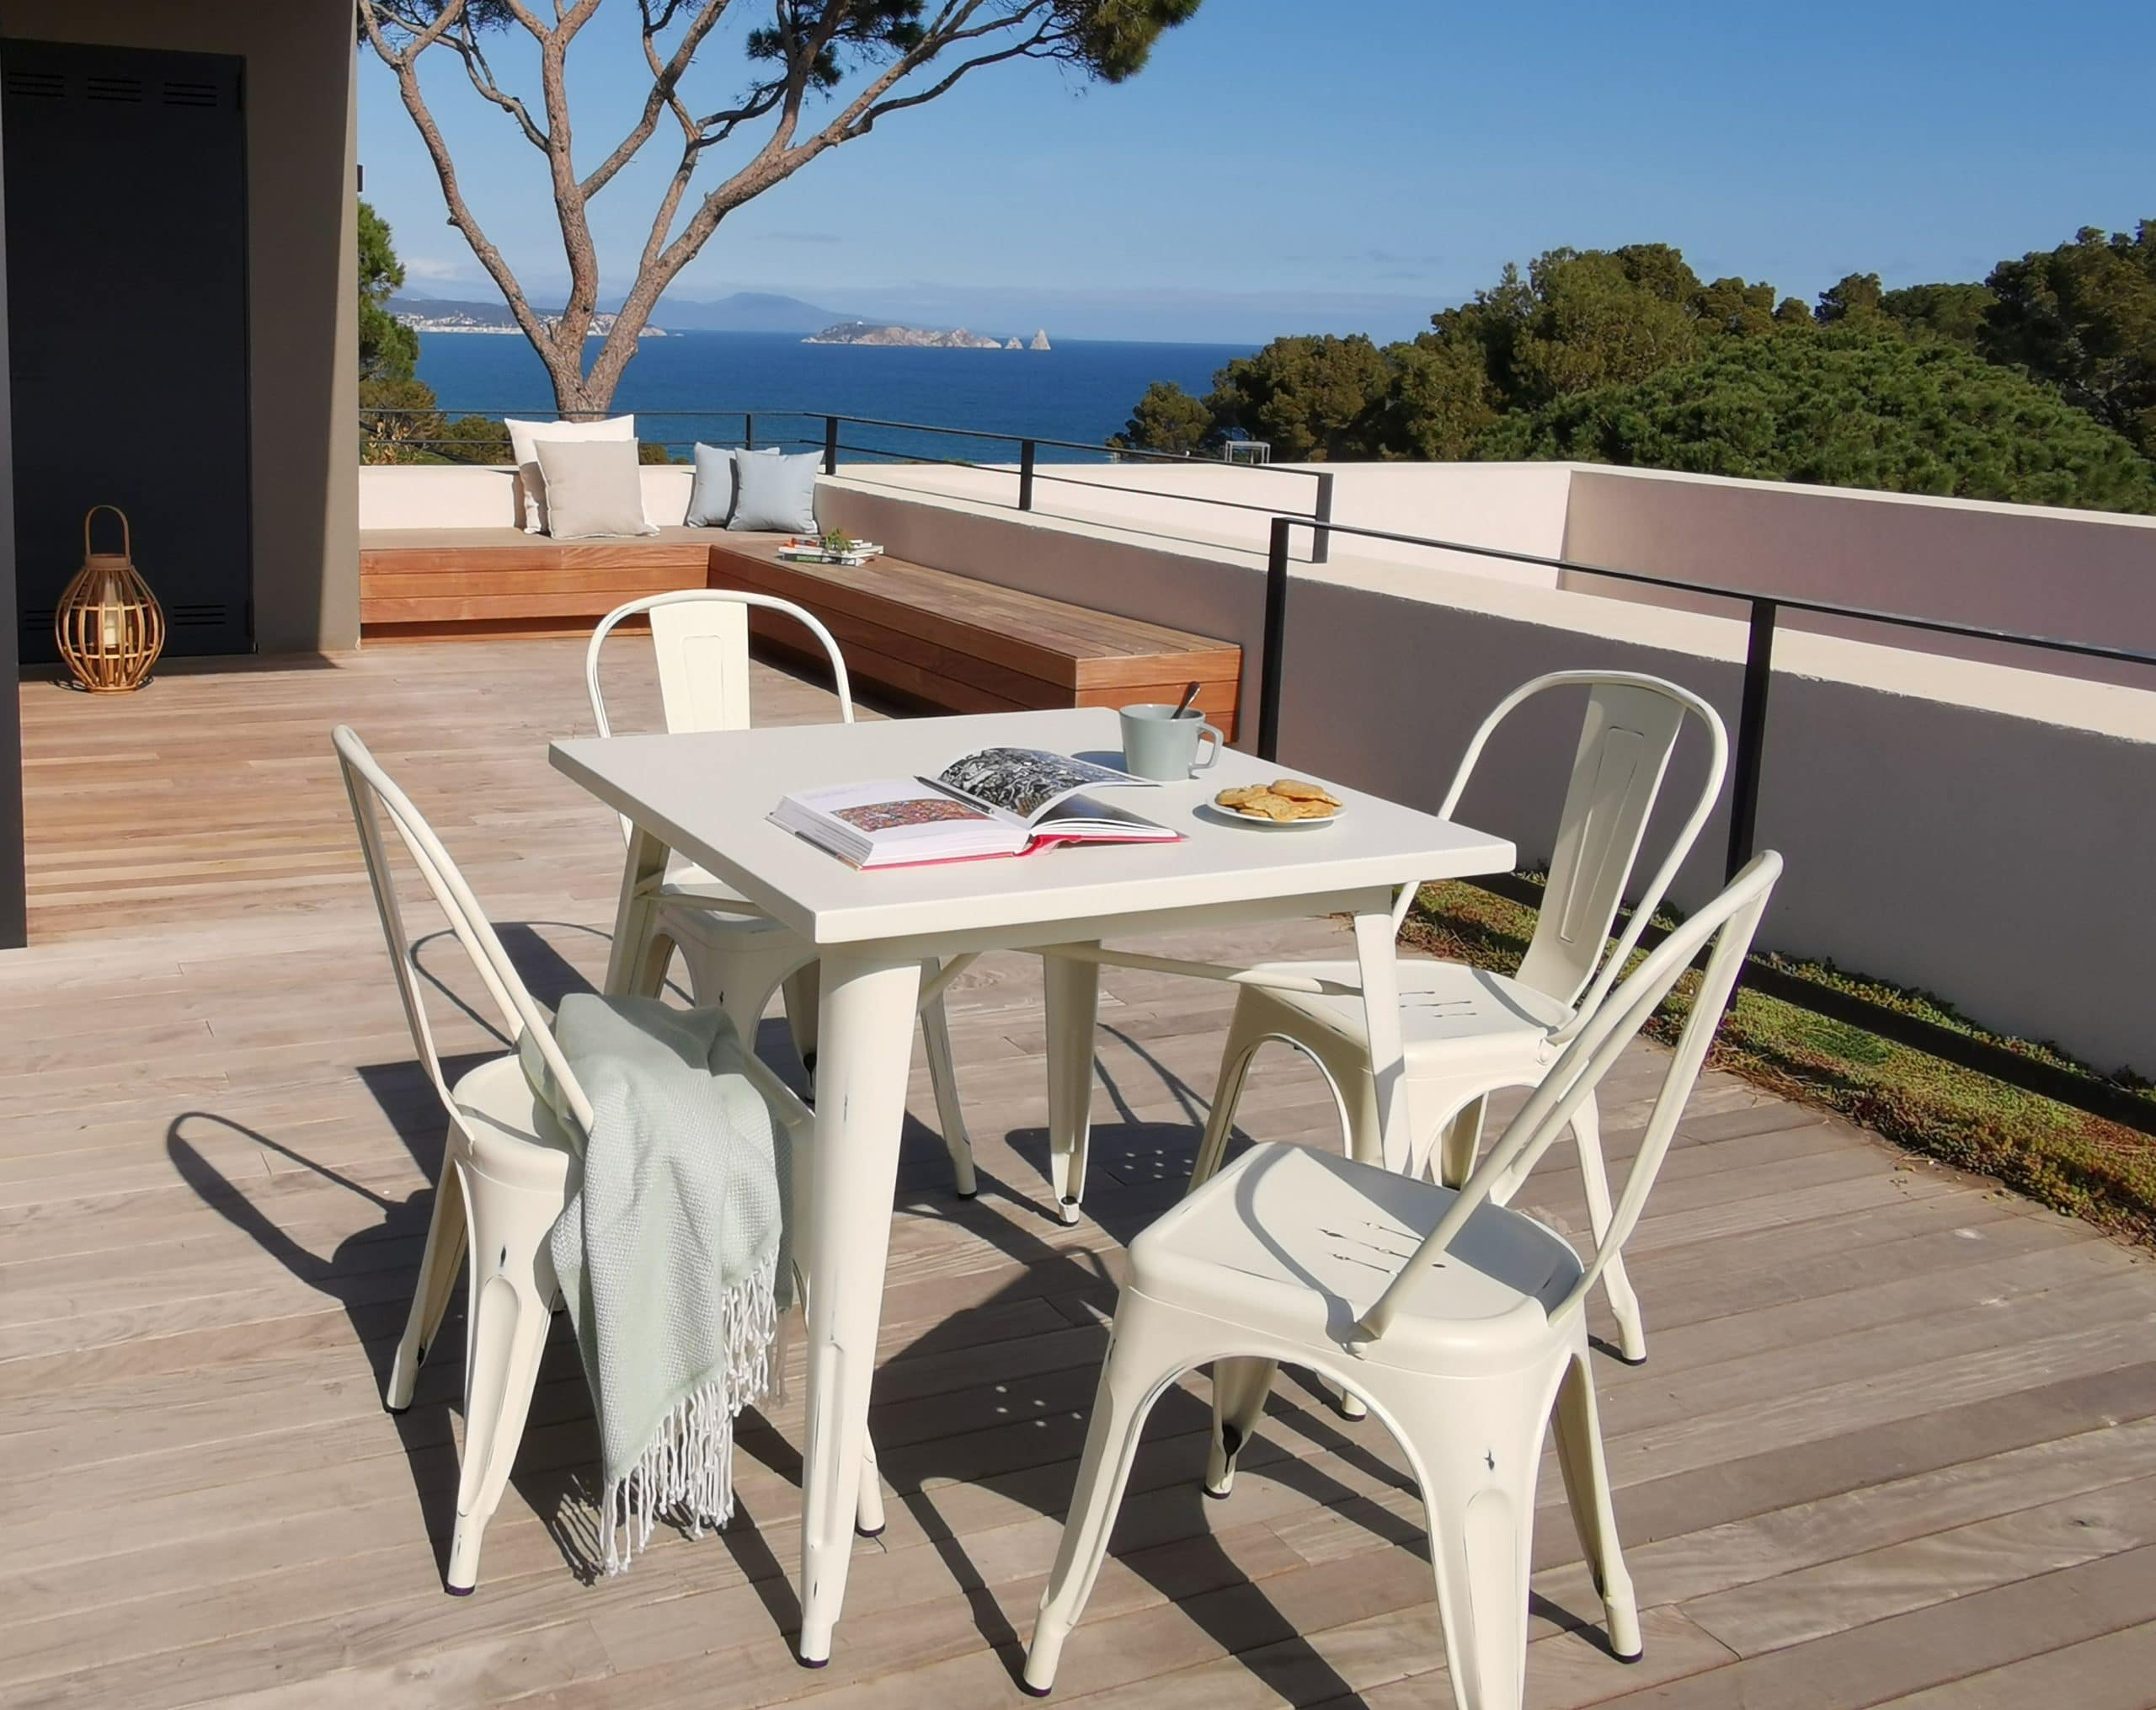 <p>Outdoor Furniture Contemporary Collection Laredo Commercial Dining Set.</p> <p> </p> <p>Table and Chairs for indoor and outdoor use. Combine with Laredo Stool.</p> <p> </p> <p>Adaptable to any environment being designed by architects. Captures essential features such as elegance lightness, functionality, ergonomics and care for the environment.</p>